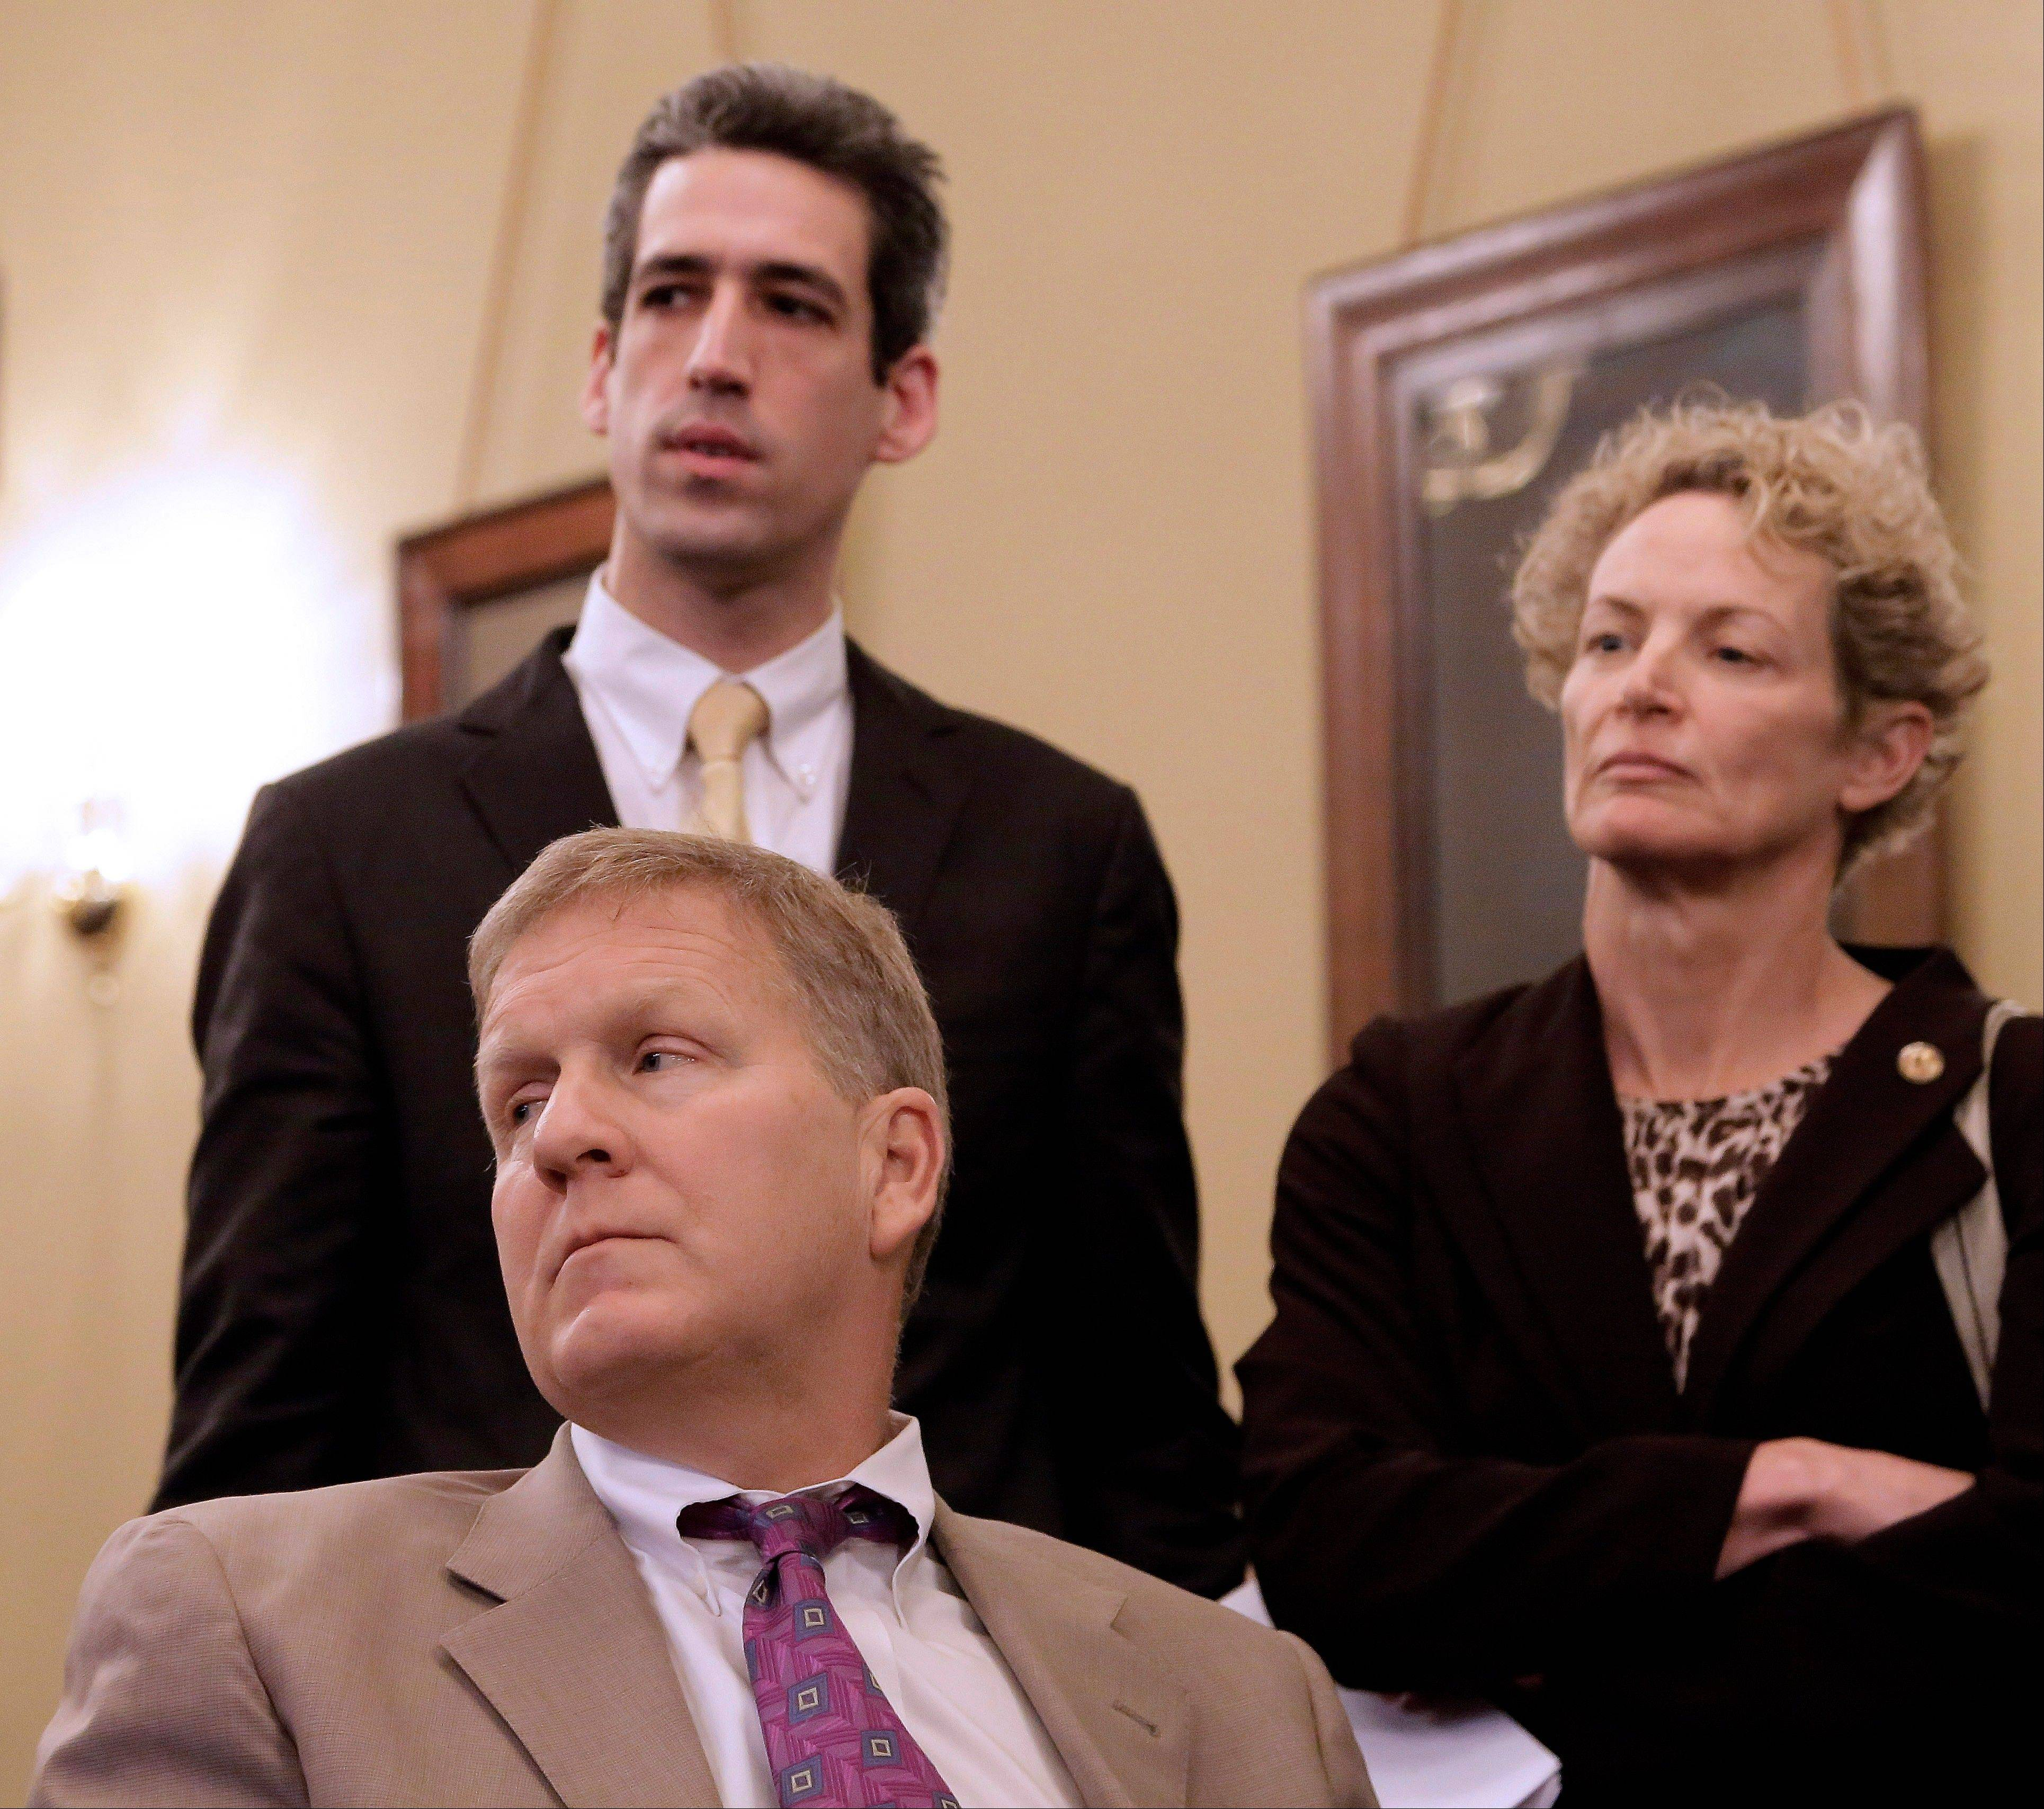 State Rep. Daniel Biss of Evanston, top left, House Republican Leader Tom Cross of Oswego, bottom, and state Rep. Elaine Nekritz of Northbrook,